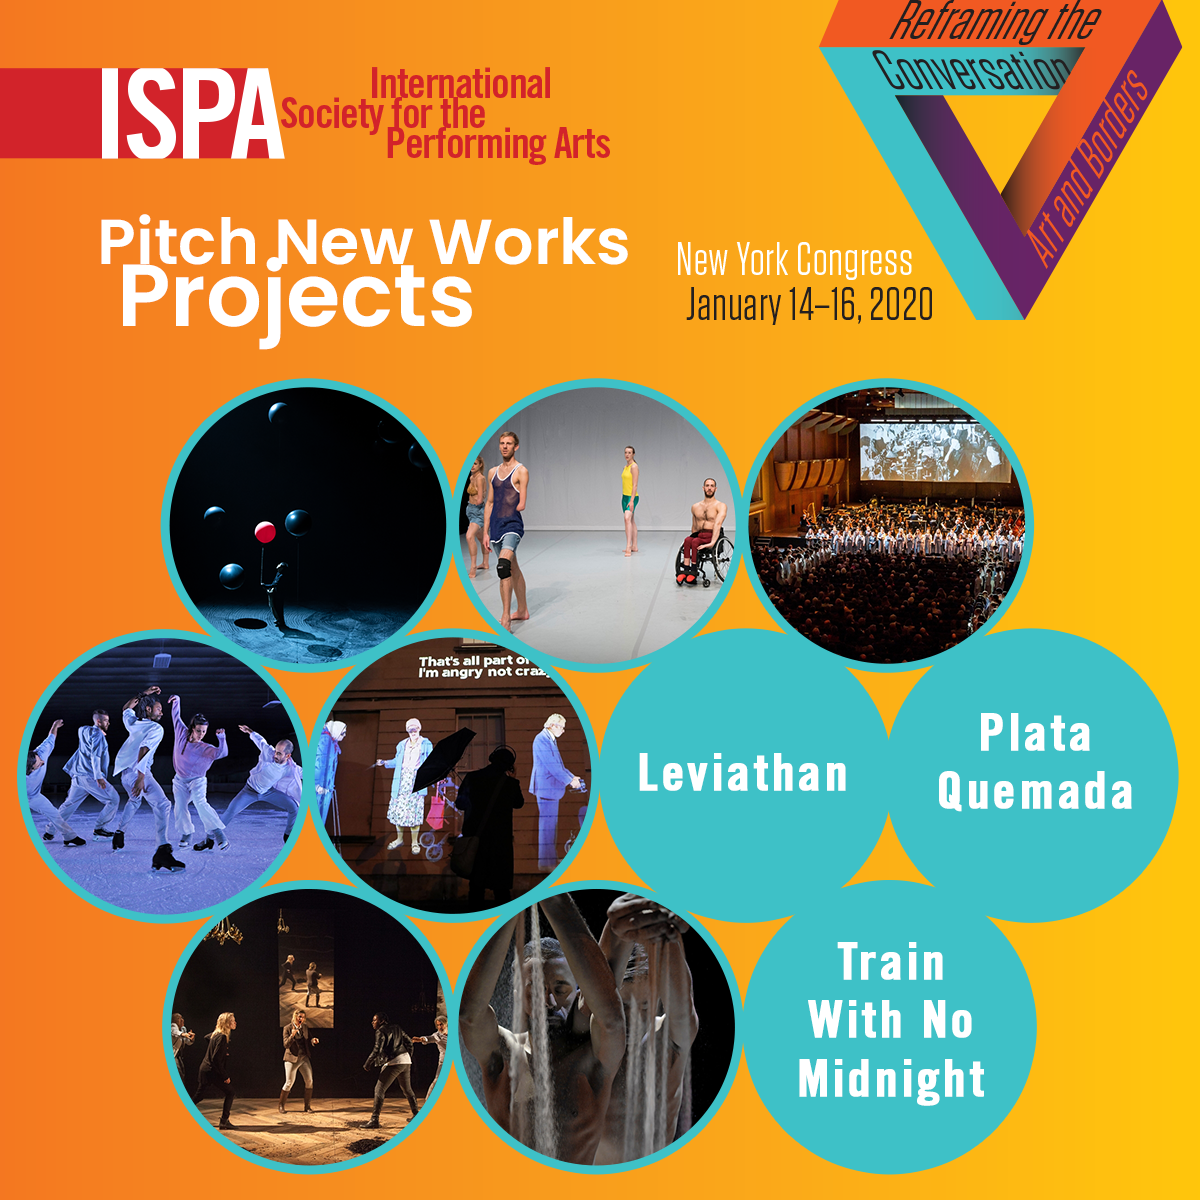 Pitch Projects for New York 2020 ISPA Congress